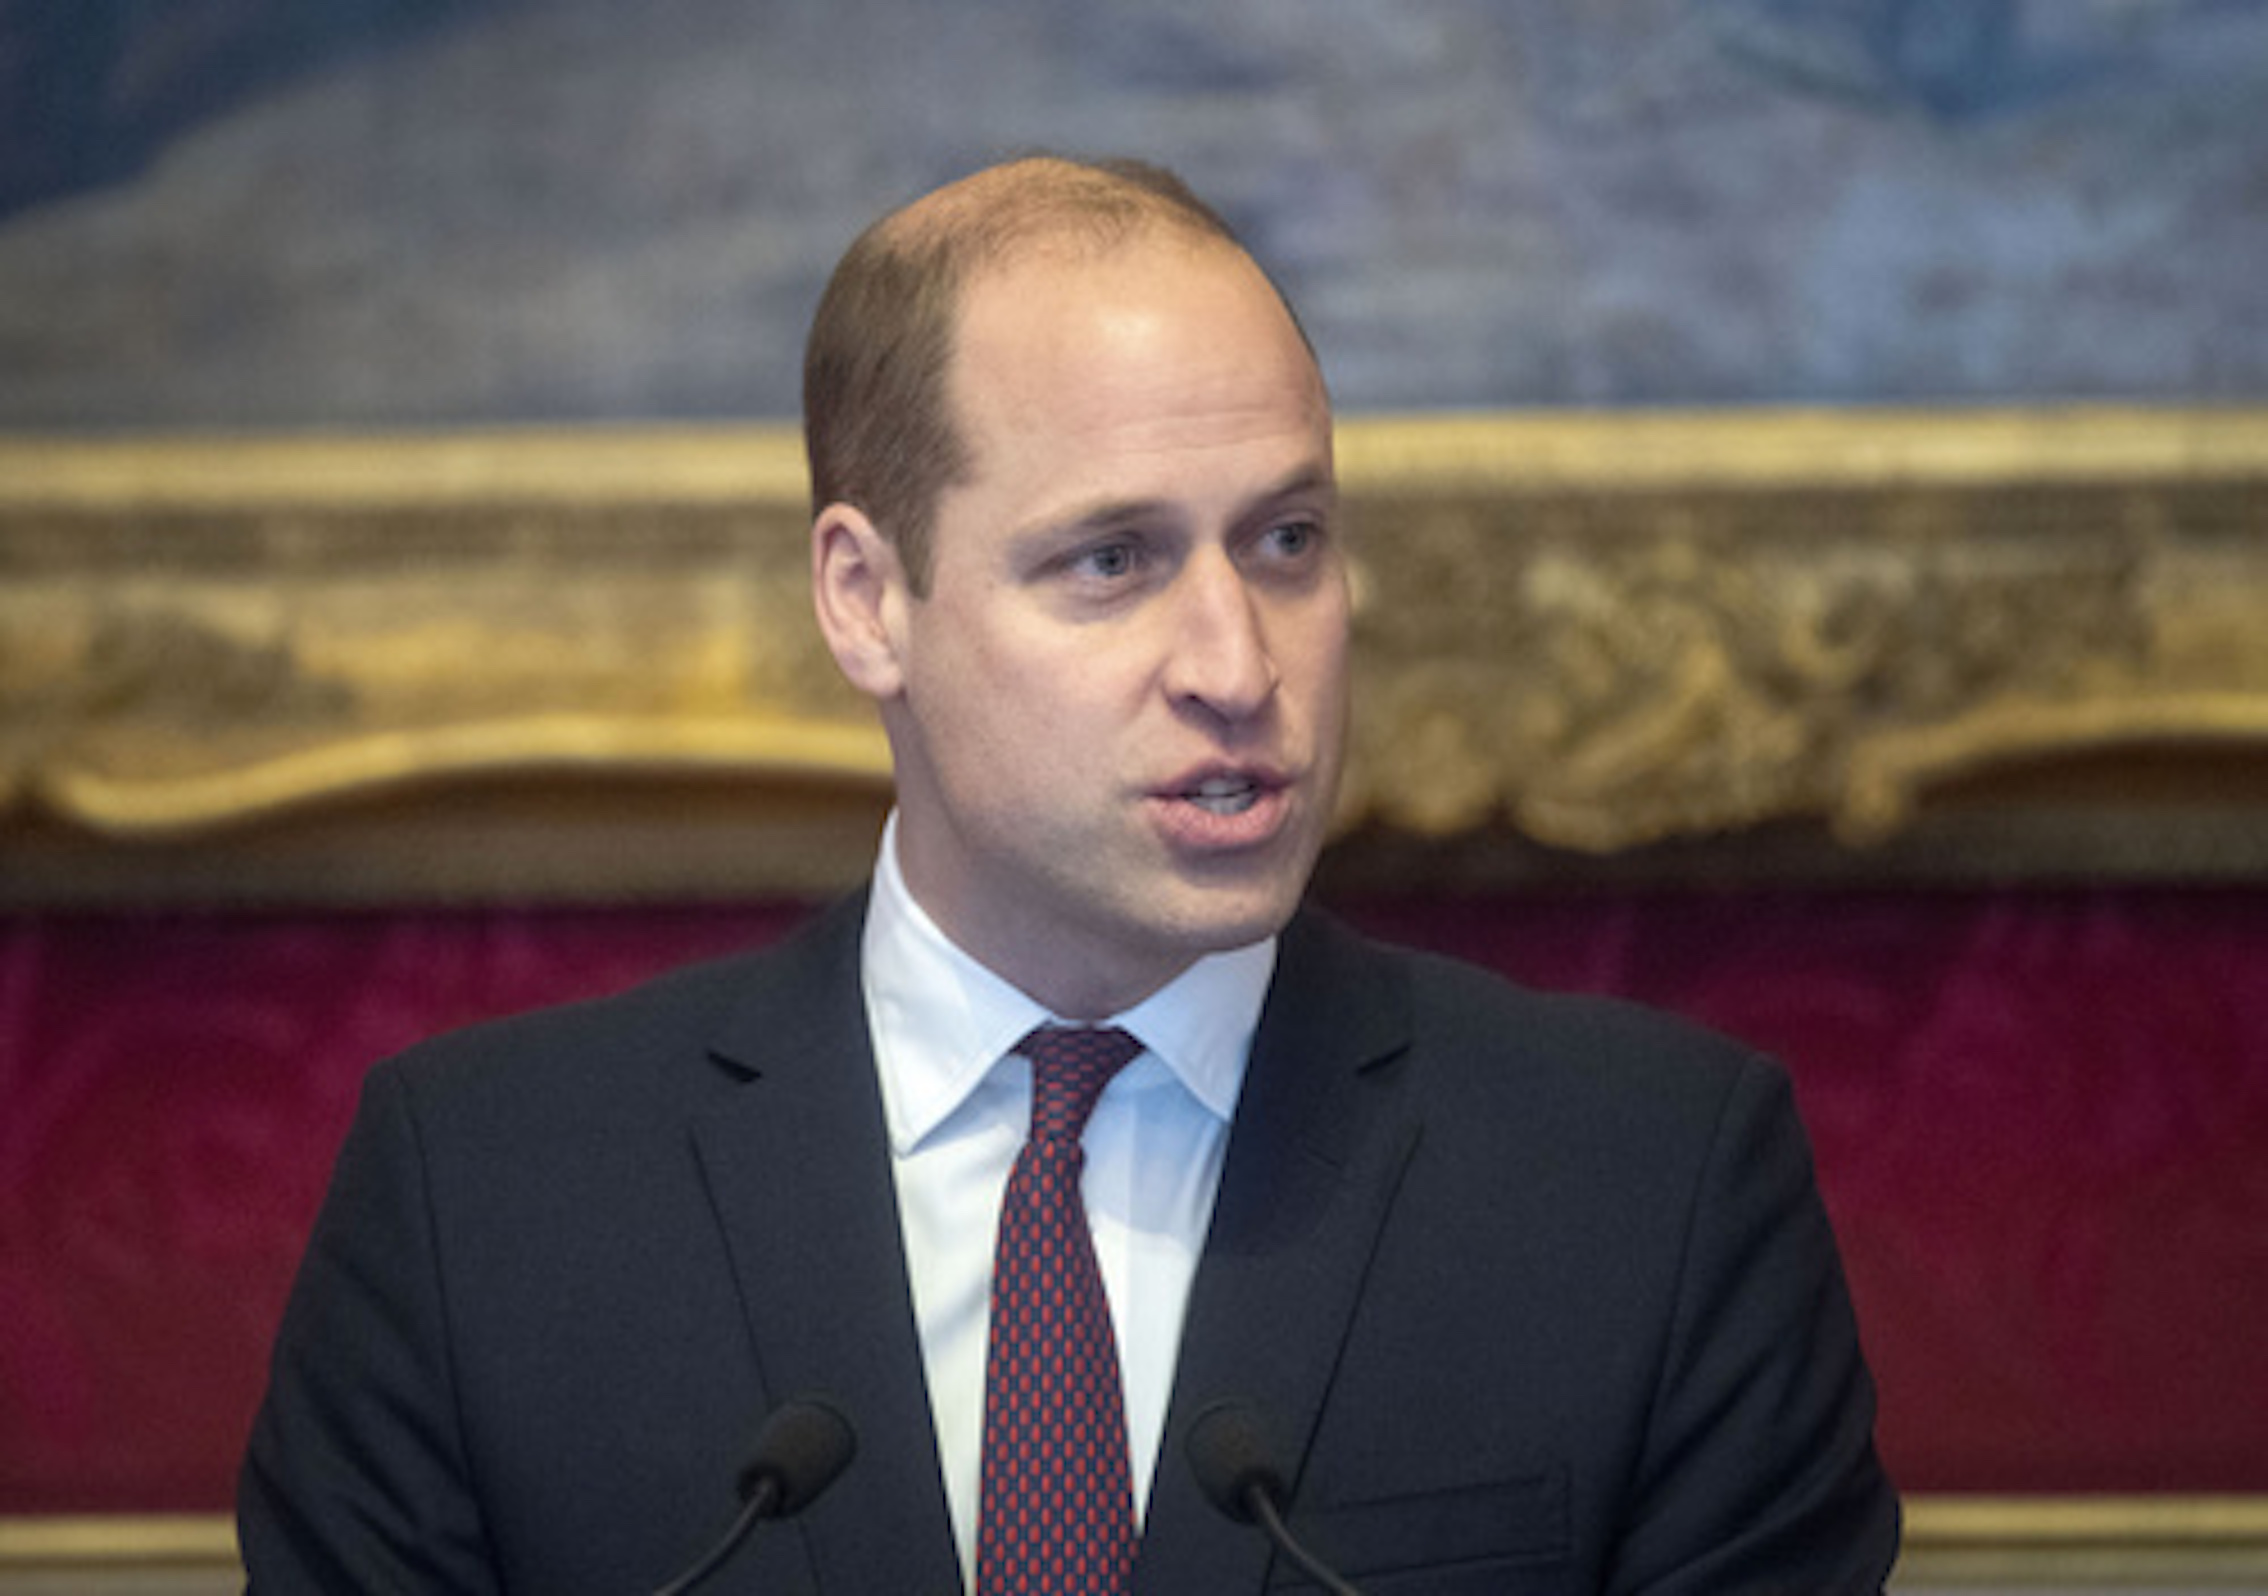 Prince William 'planning romantic Valentine's Day treat for Kate Middleton'